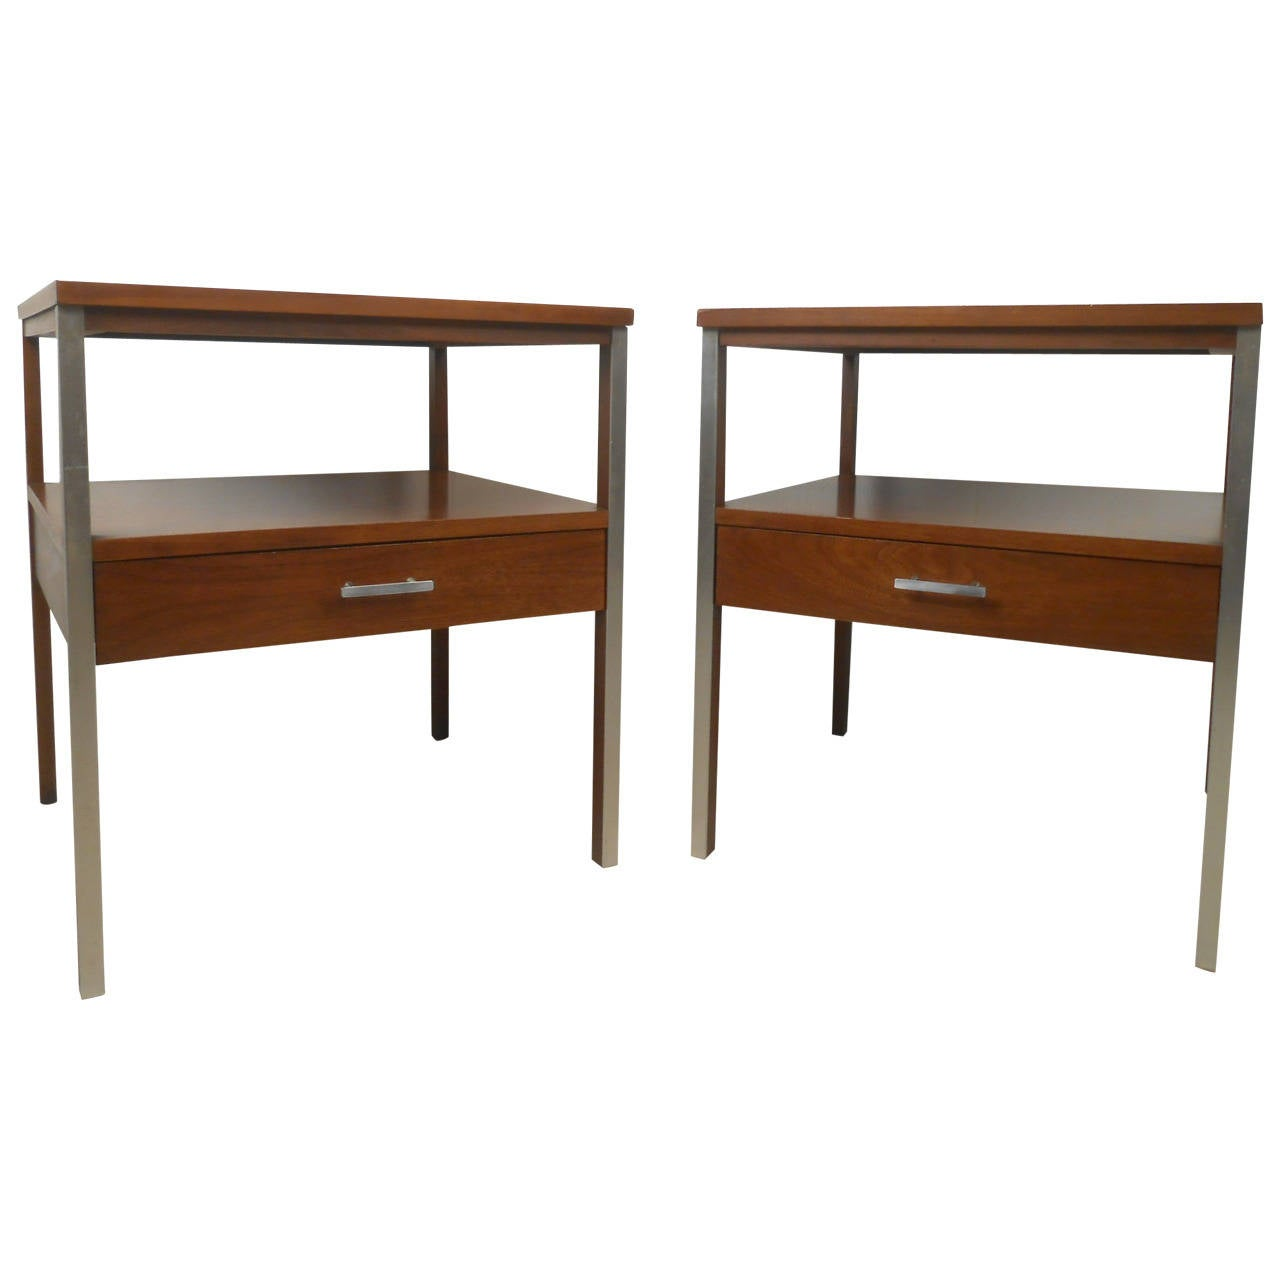 Modern Night Stands Nightstand Bedroom Bedside Table Storage Furniture Night Stand Nightstands